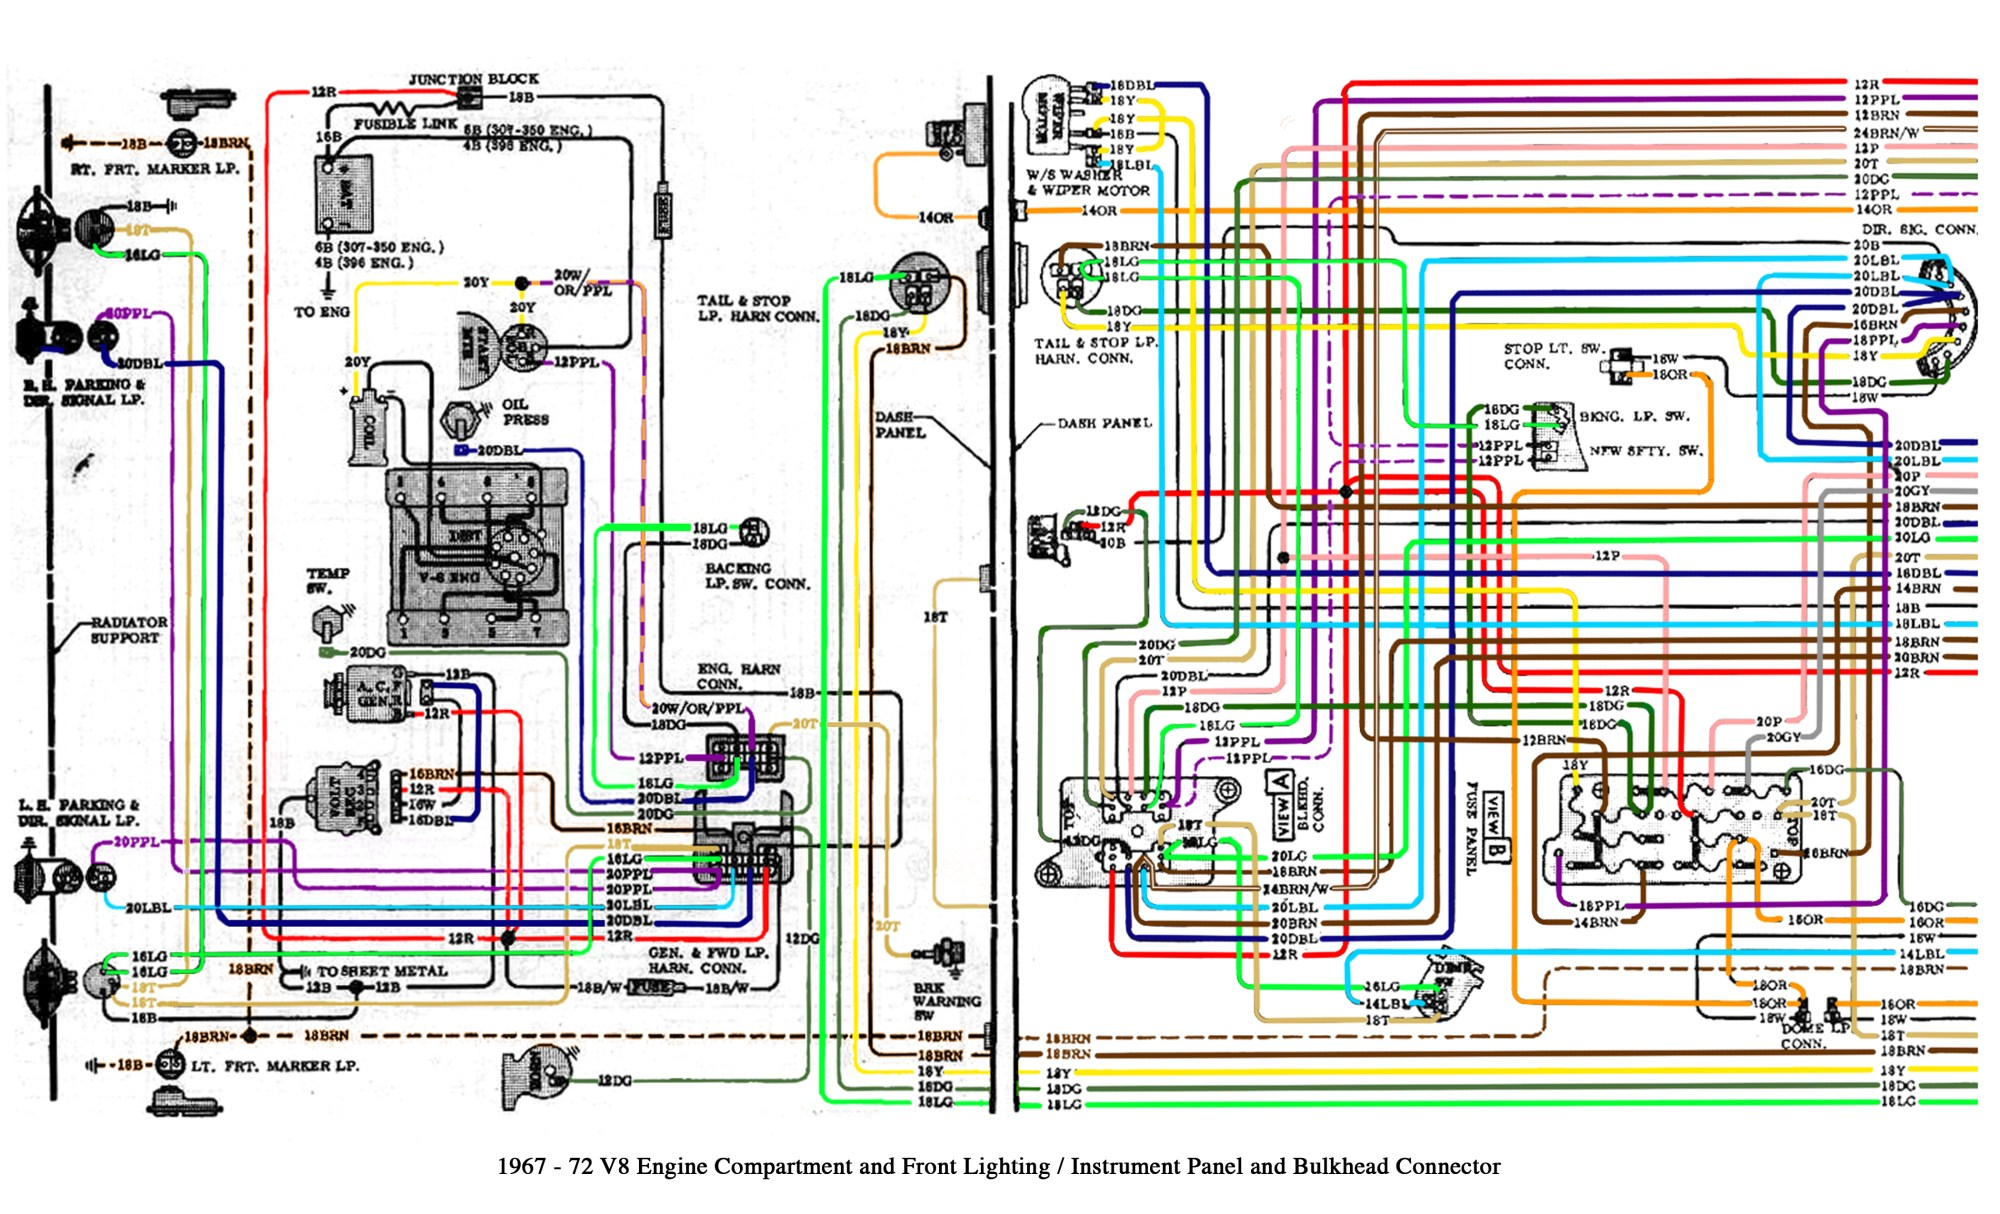 hight resolution of 84 c10 wiring diagram wiring diagram expert 1984 chevy c10 electrical wiring